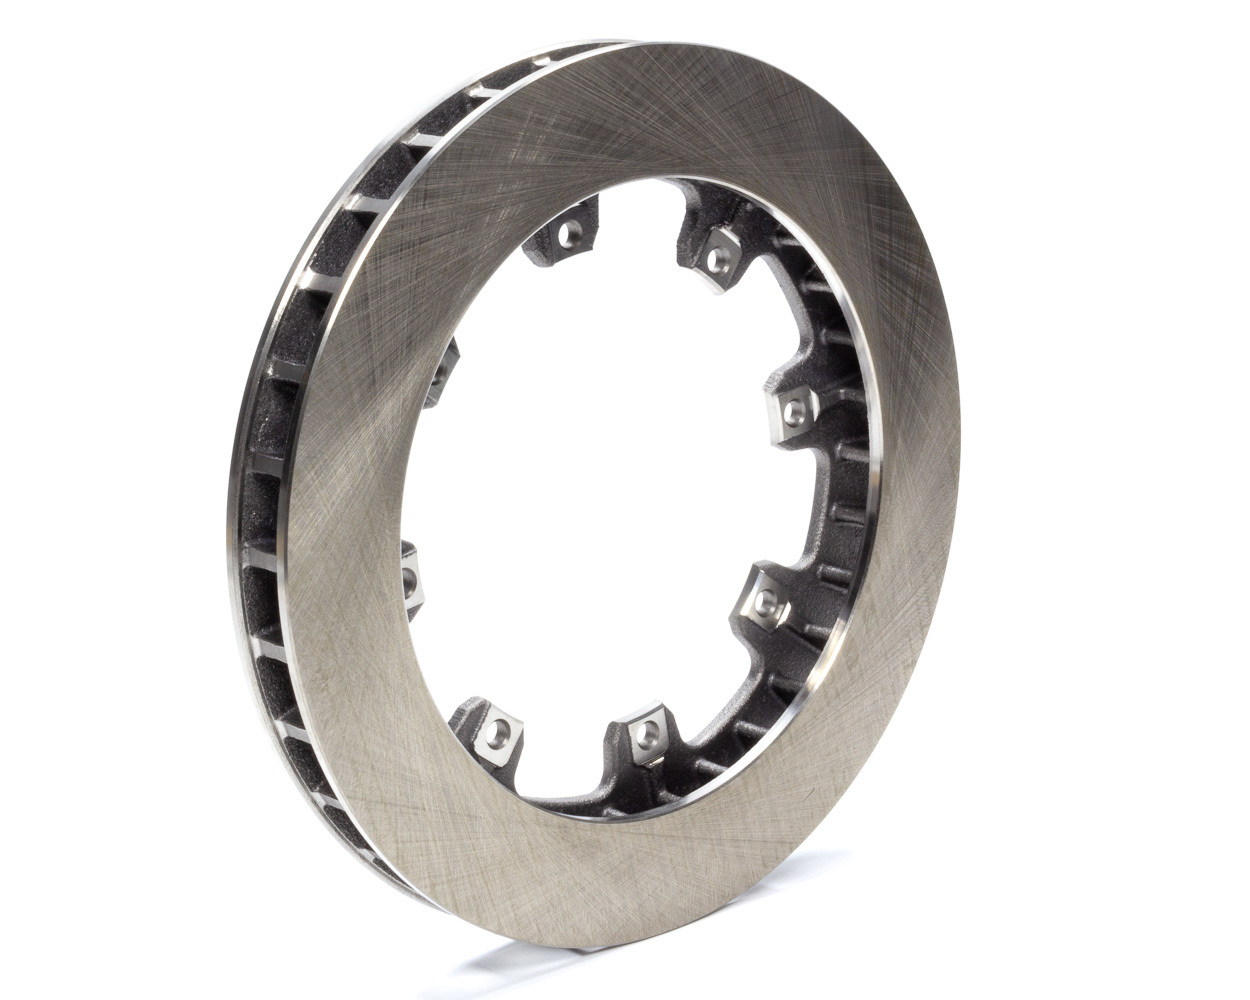 AFCO Racing Products 9850-6020 Brake Rotor, Straight Vane, 11.750 in OD, 1.250 in Thick, 8 x 7.000 in Bolt Pattern, Steel, Natural, Each